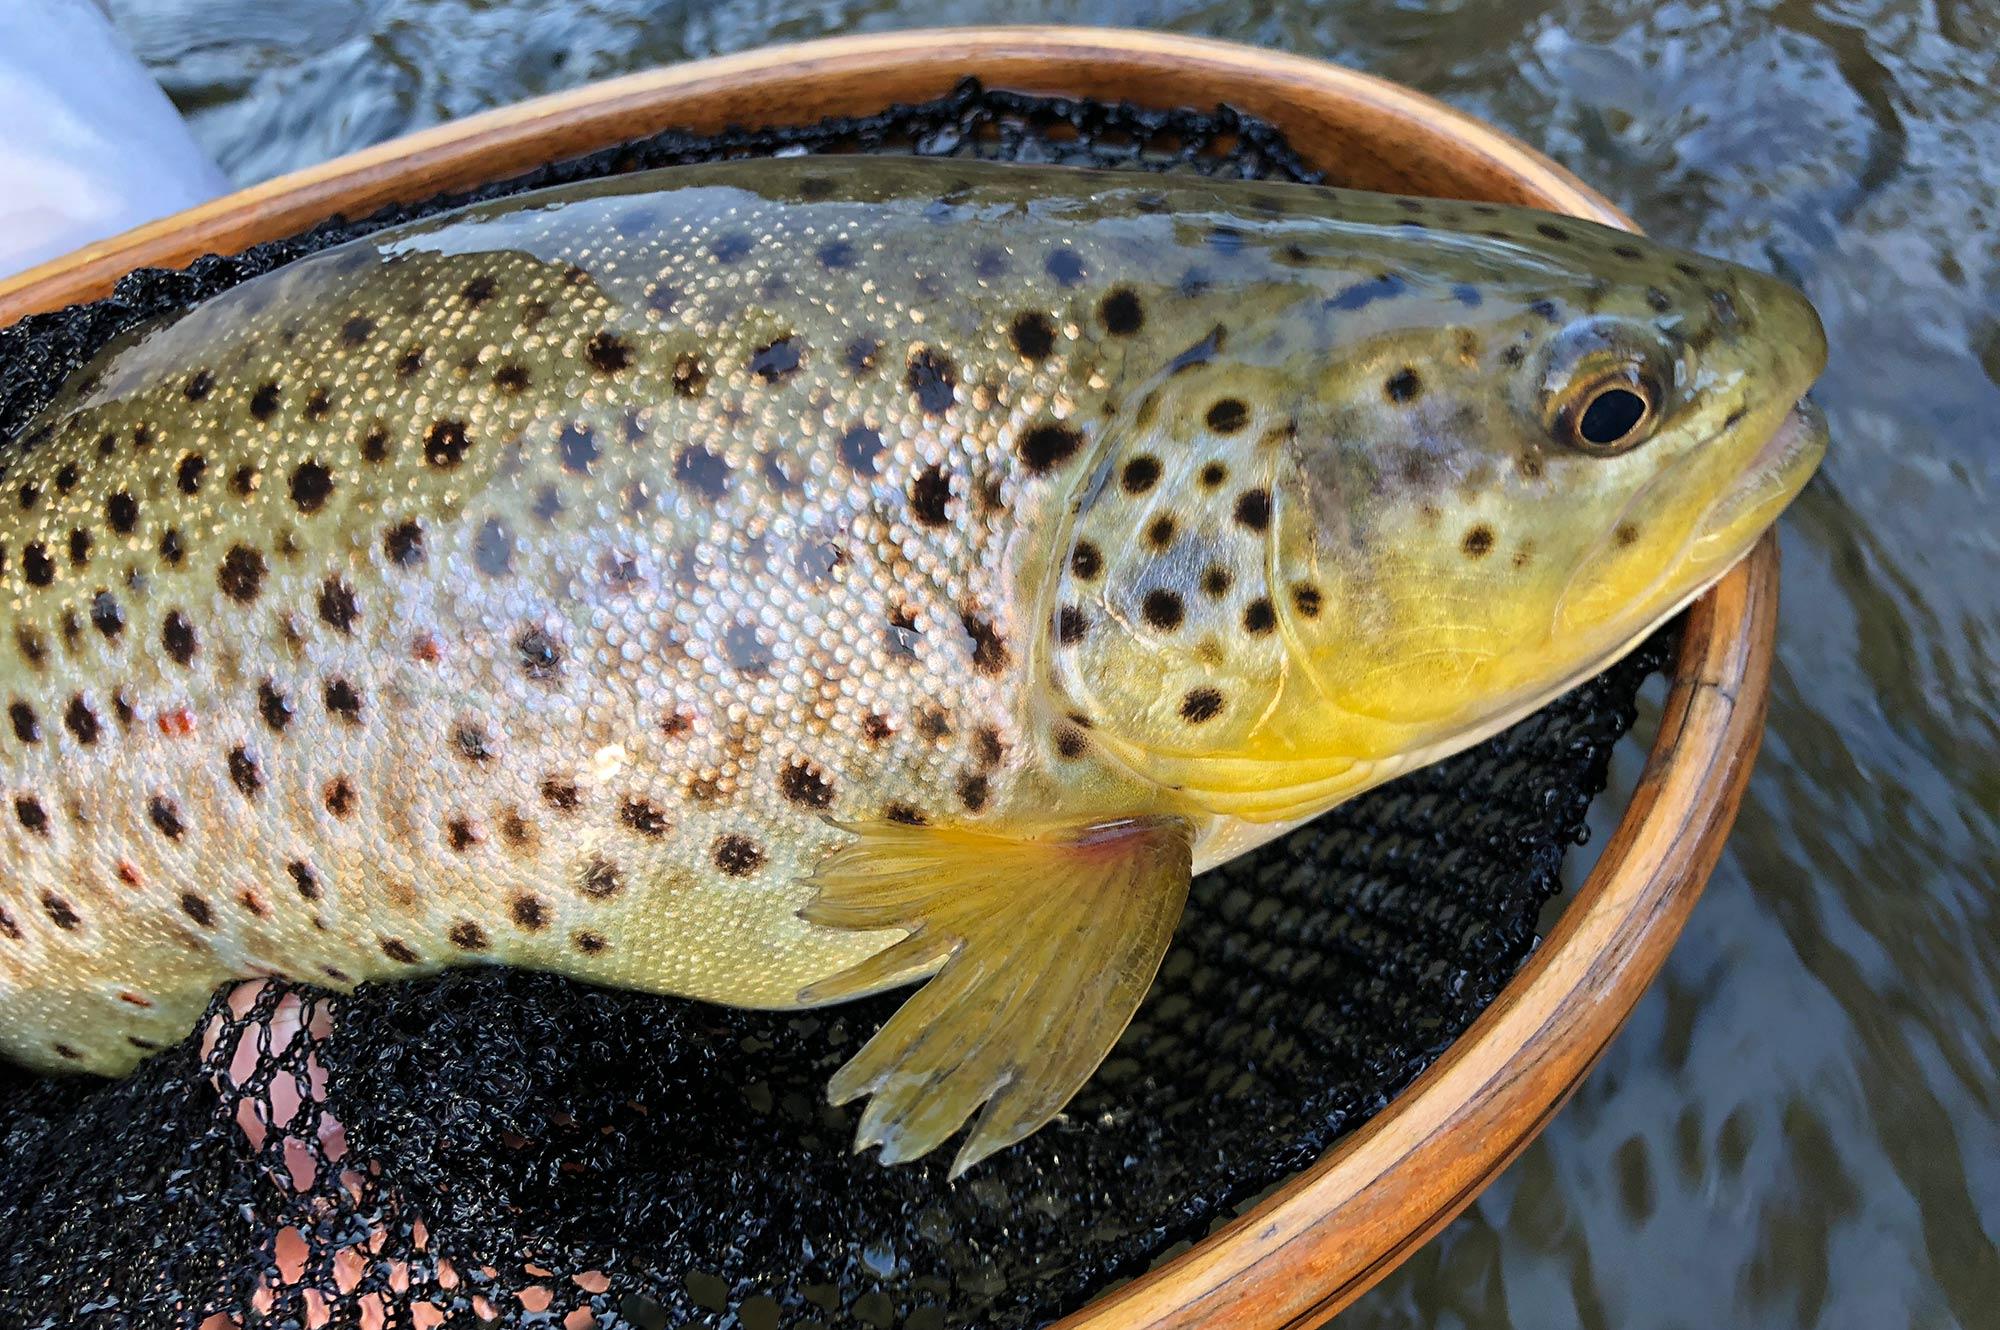 A beautiful, heavy roundnosed female brown trout